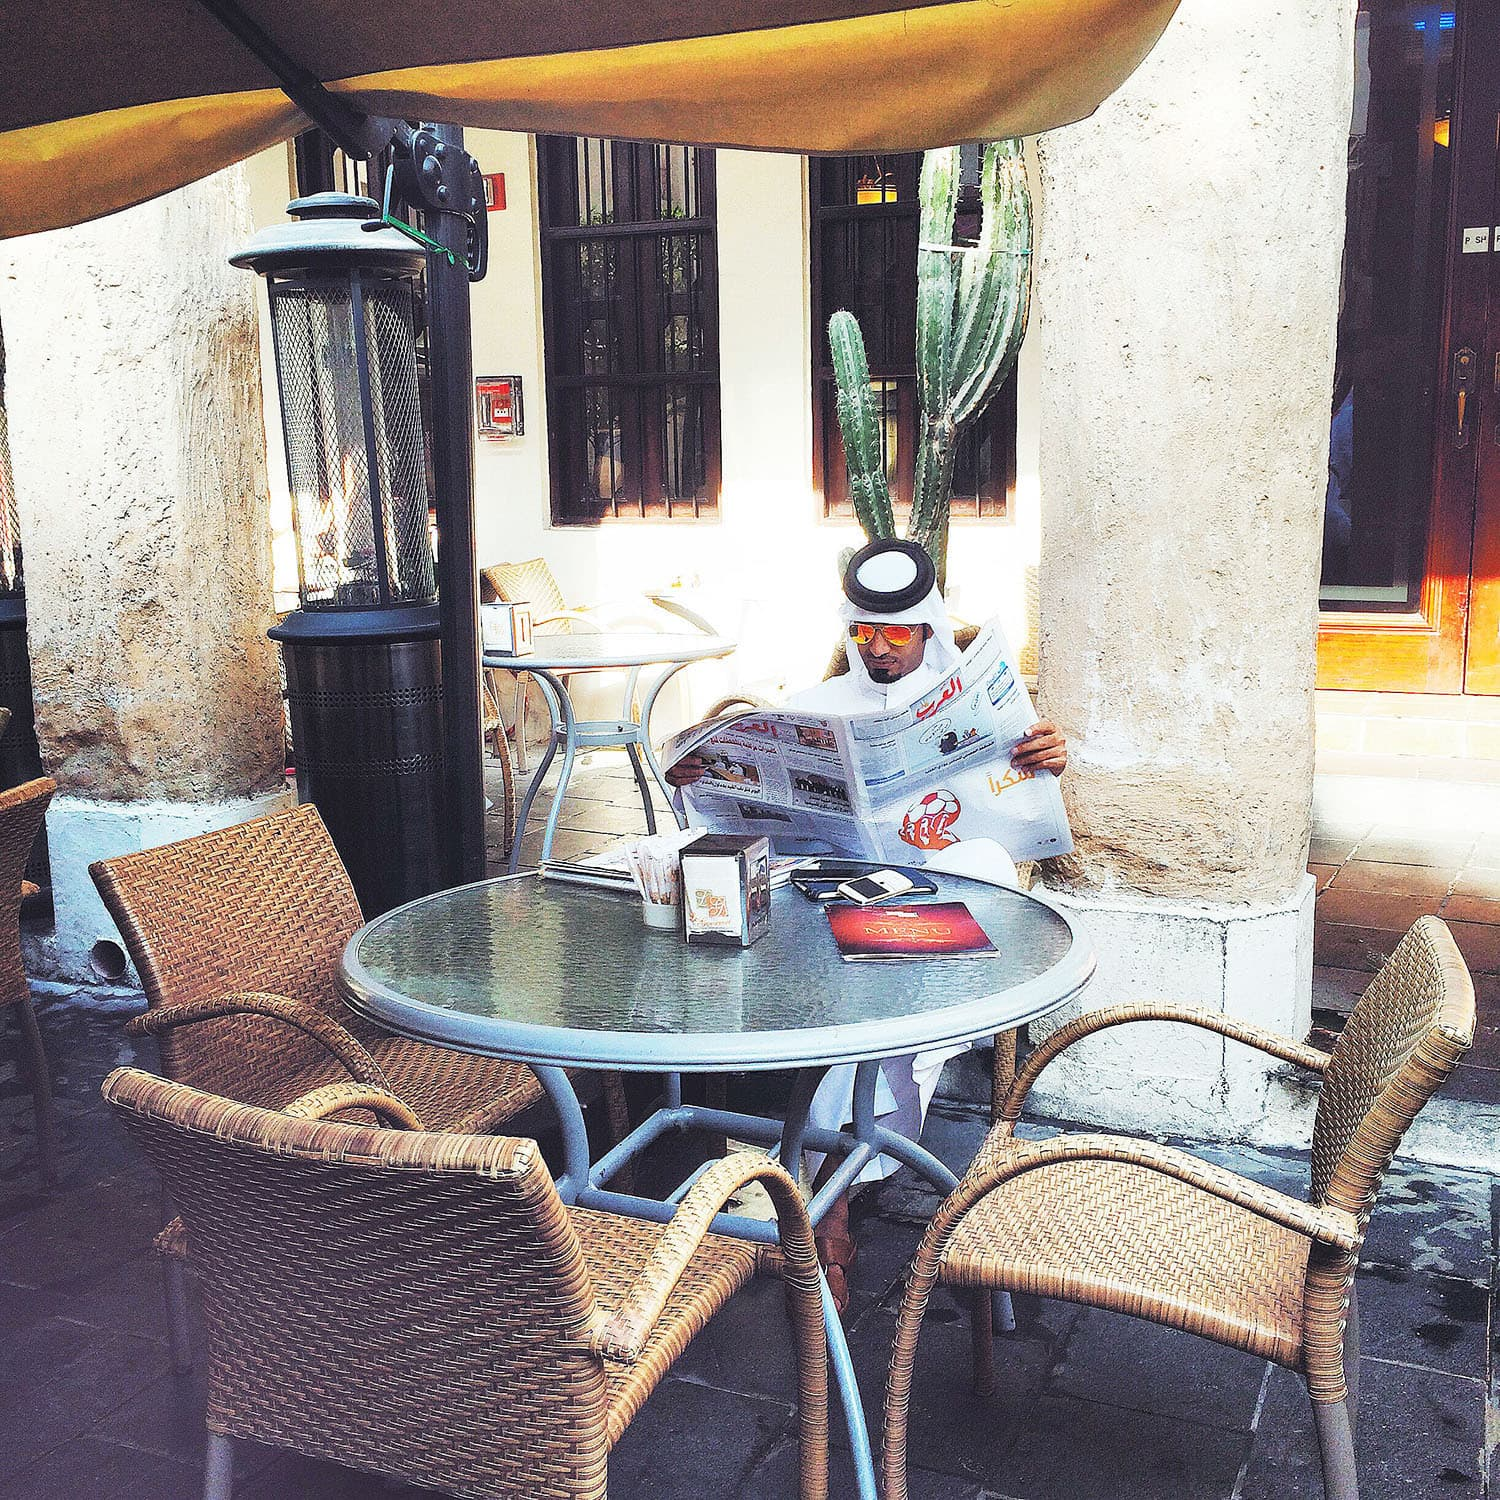 A local man reading the newspaper at a café in Souq Waqif.